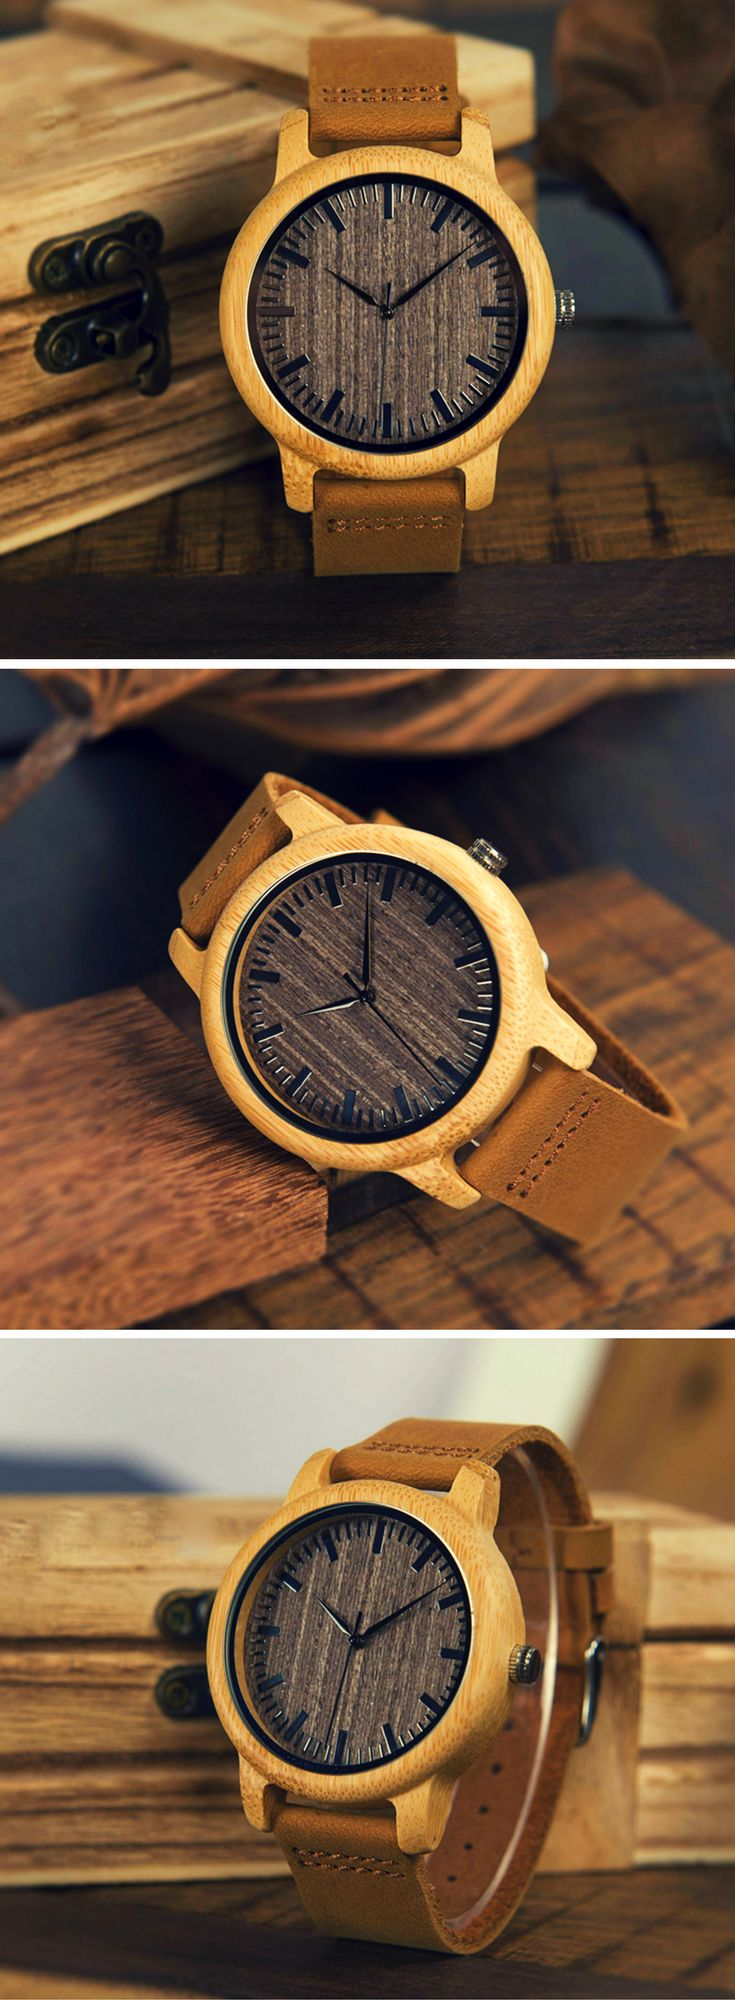 A beautiful men's watch made from 100% bamboo & leather | www.arborcouture.com | affordable watch, affordable watch for men, affordable watch collection, affordable watches, affordable watches for men, men's watch leather, men's watch leather brown, men's watch leather black, men's watch leather simple, men's watch leather life, men's watch leather classy, men's watch leather casual | #menswatches